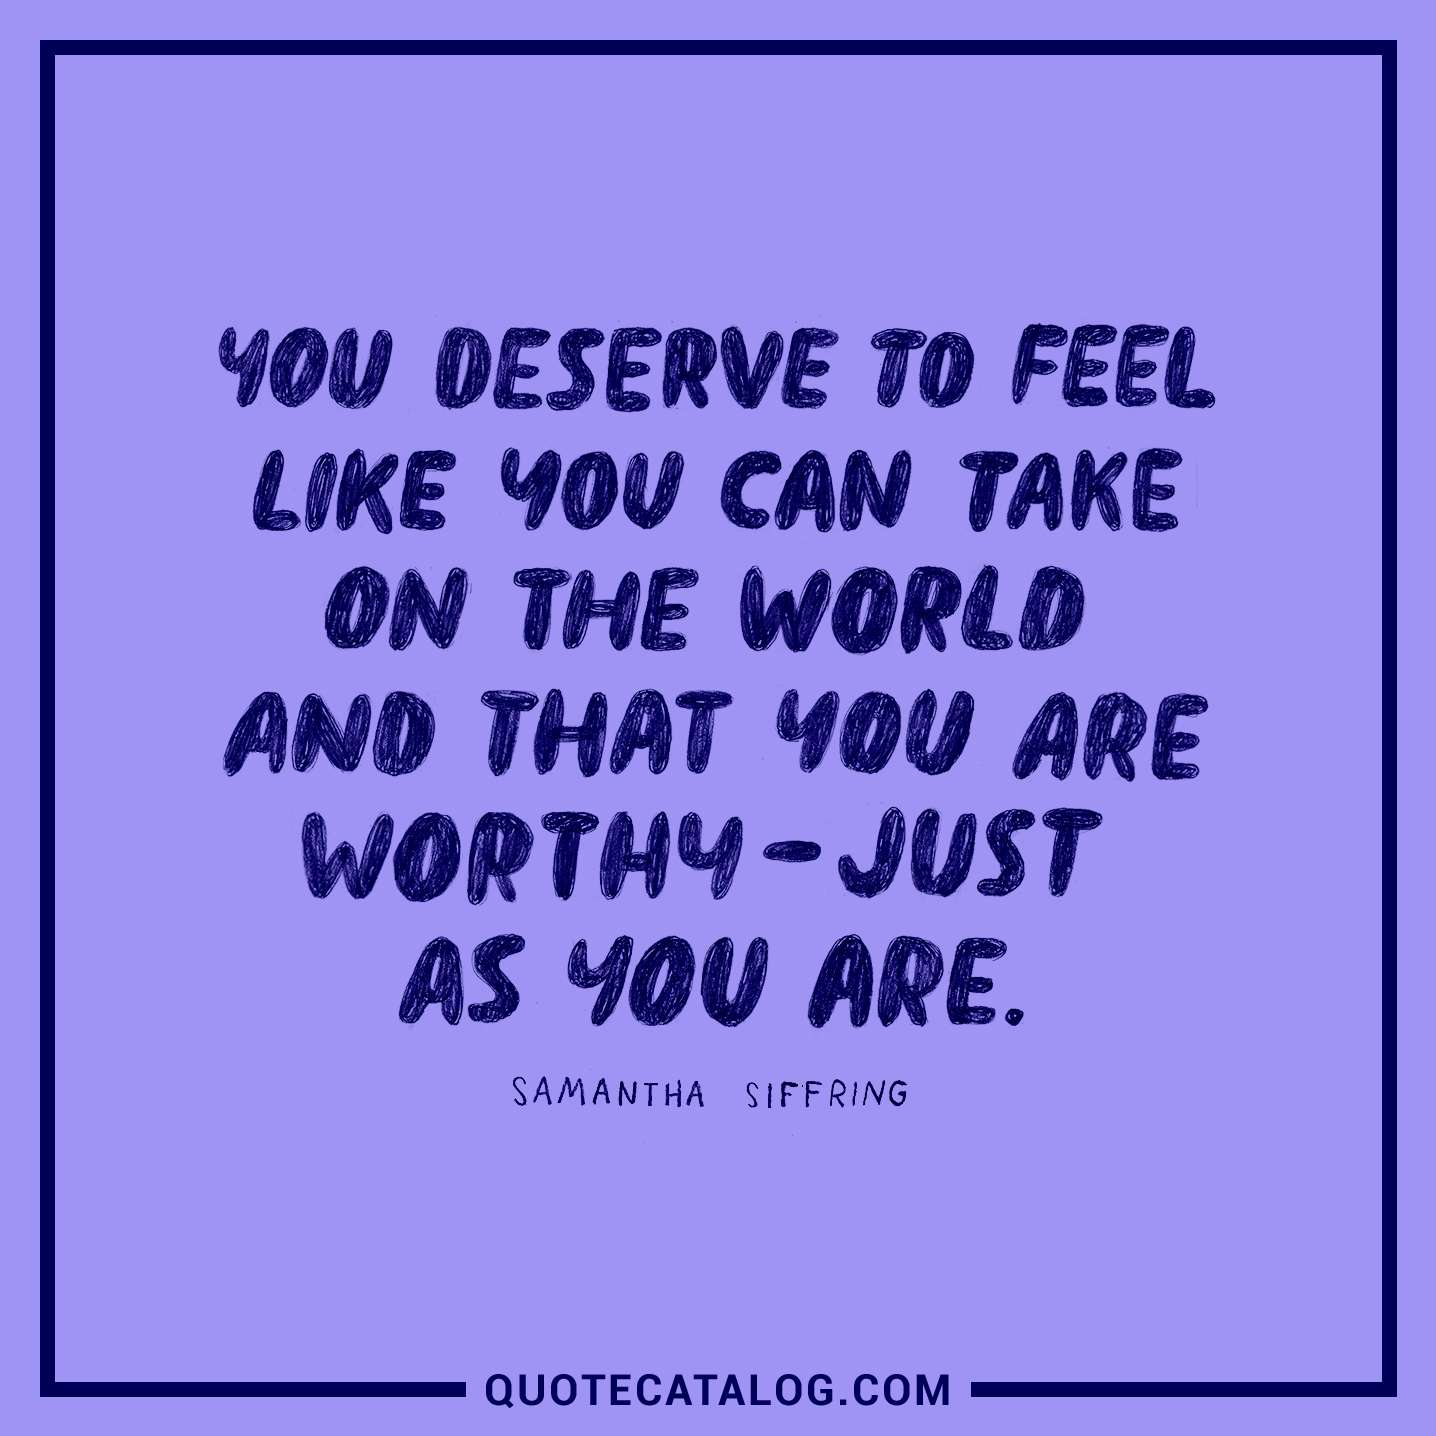 Samantha Siffring Quote You Deserve To Feel Like You Can Take On